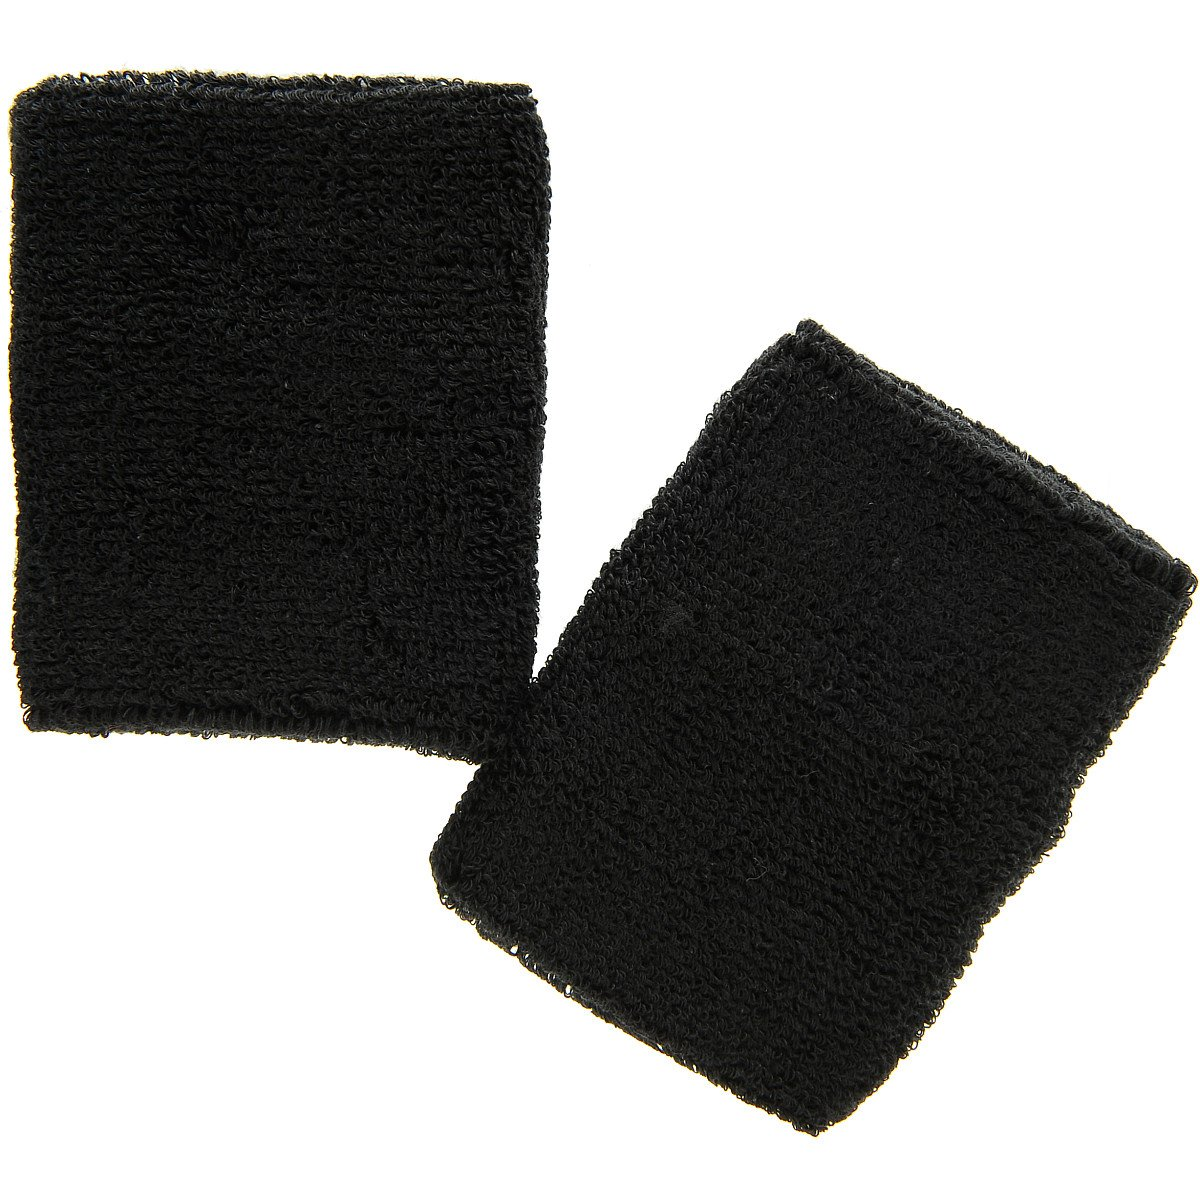 Black 4'' Extra Wide Cotton Wristband